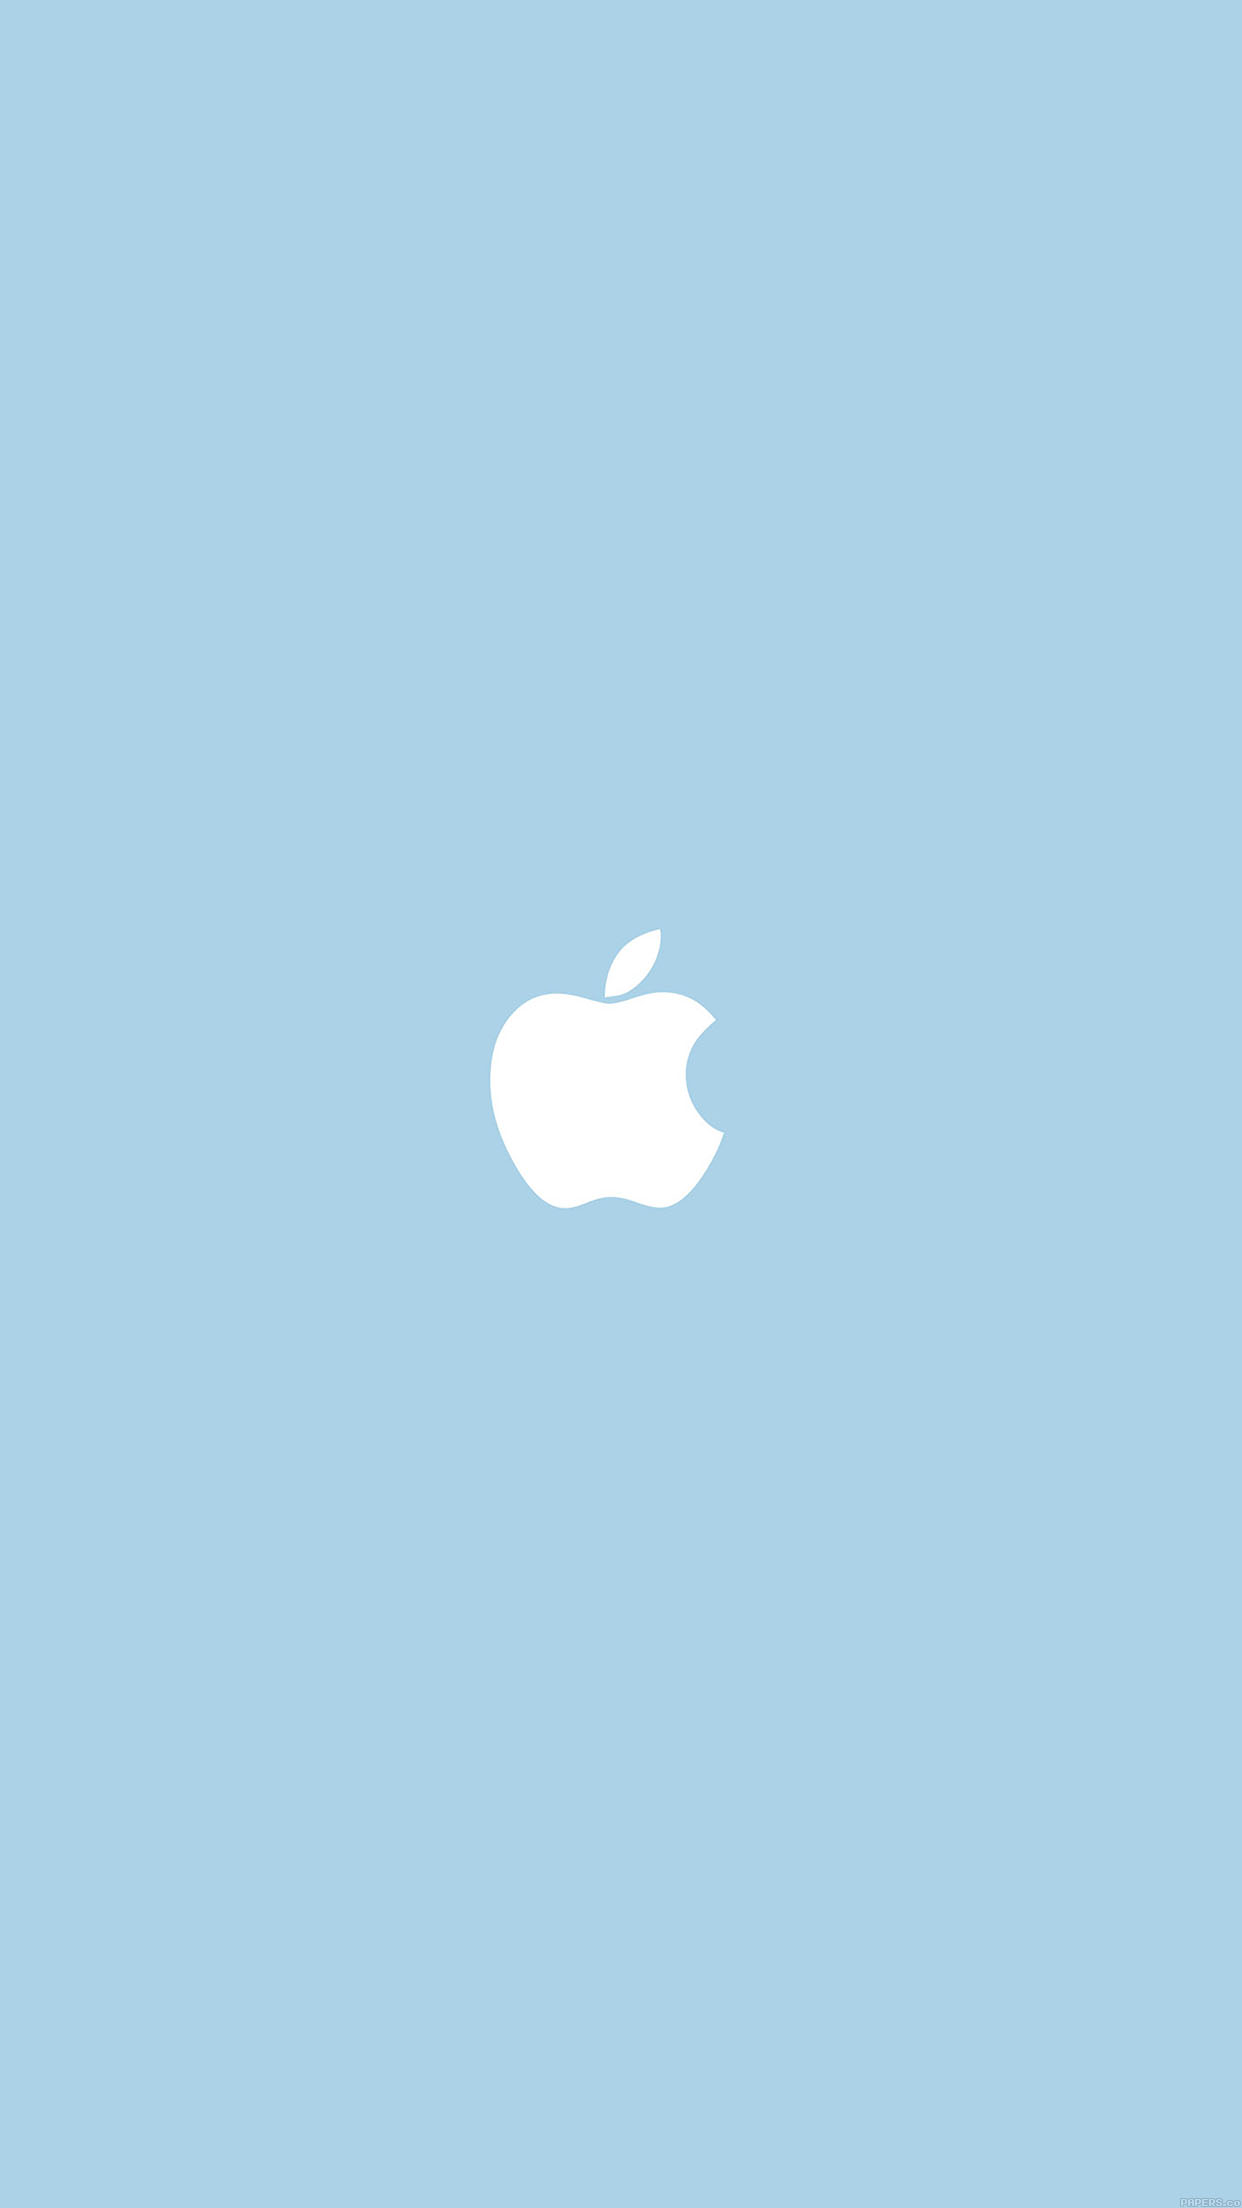 Apple Simple Logo Blue Minimal Android wallpaper